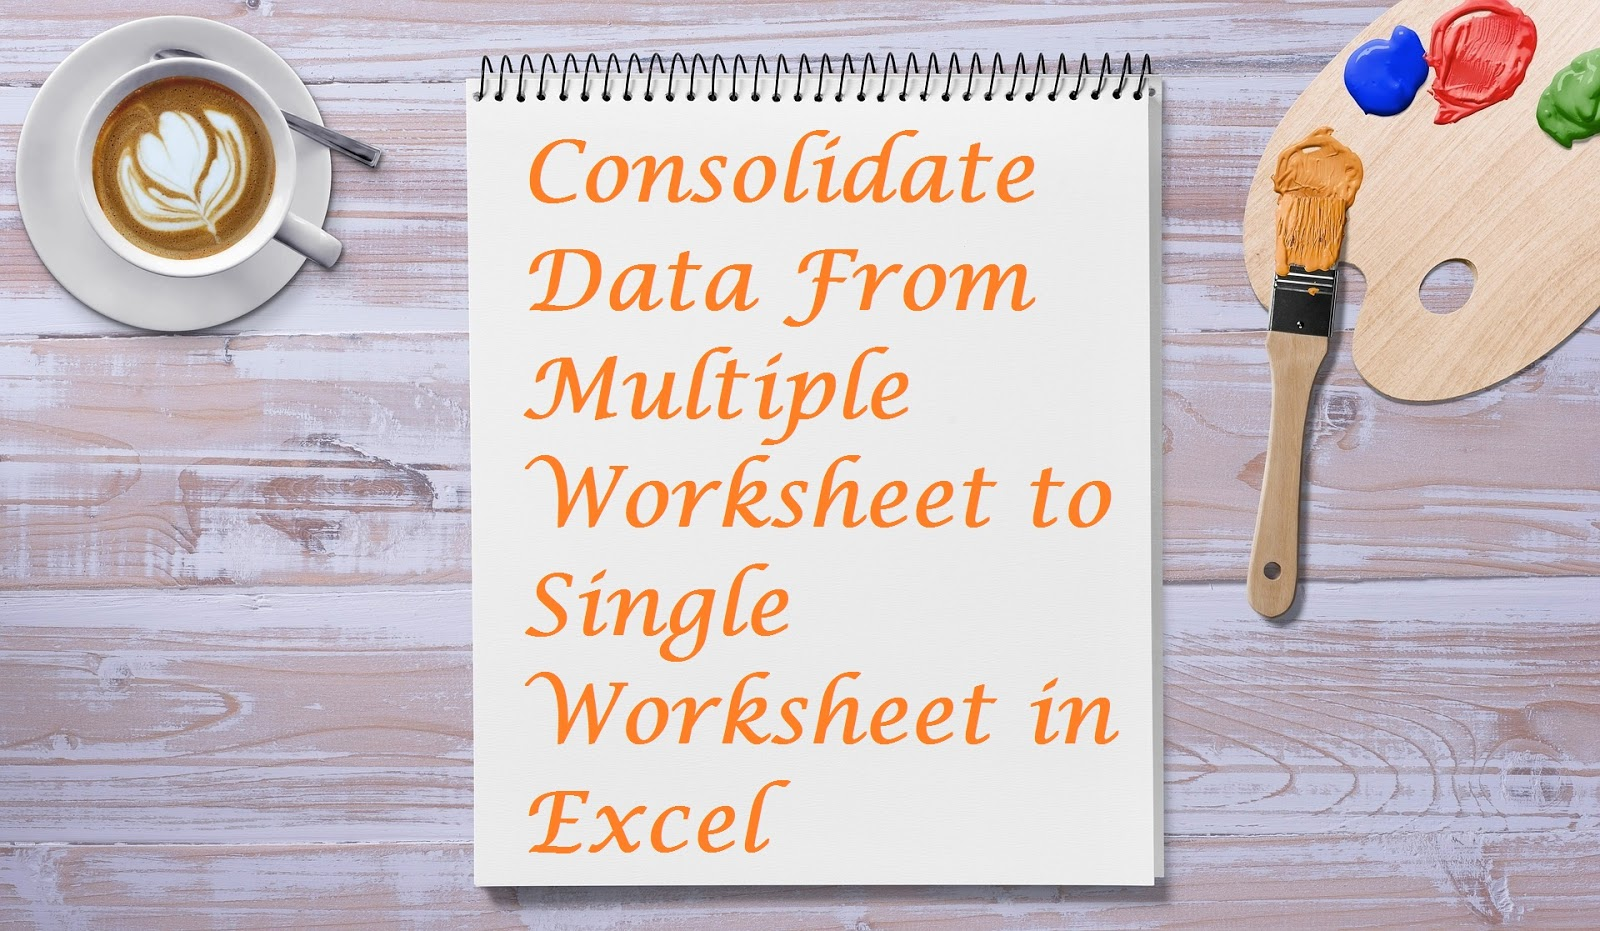 Consolidate Data From Multiple Worksheet To Single